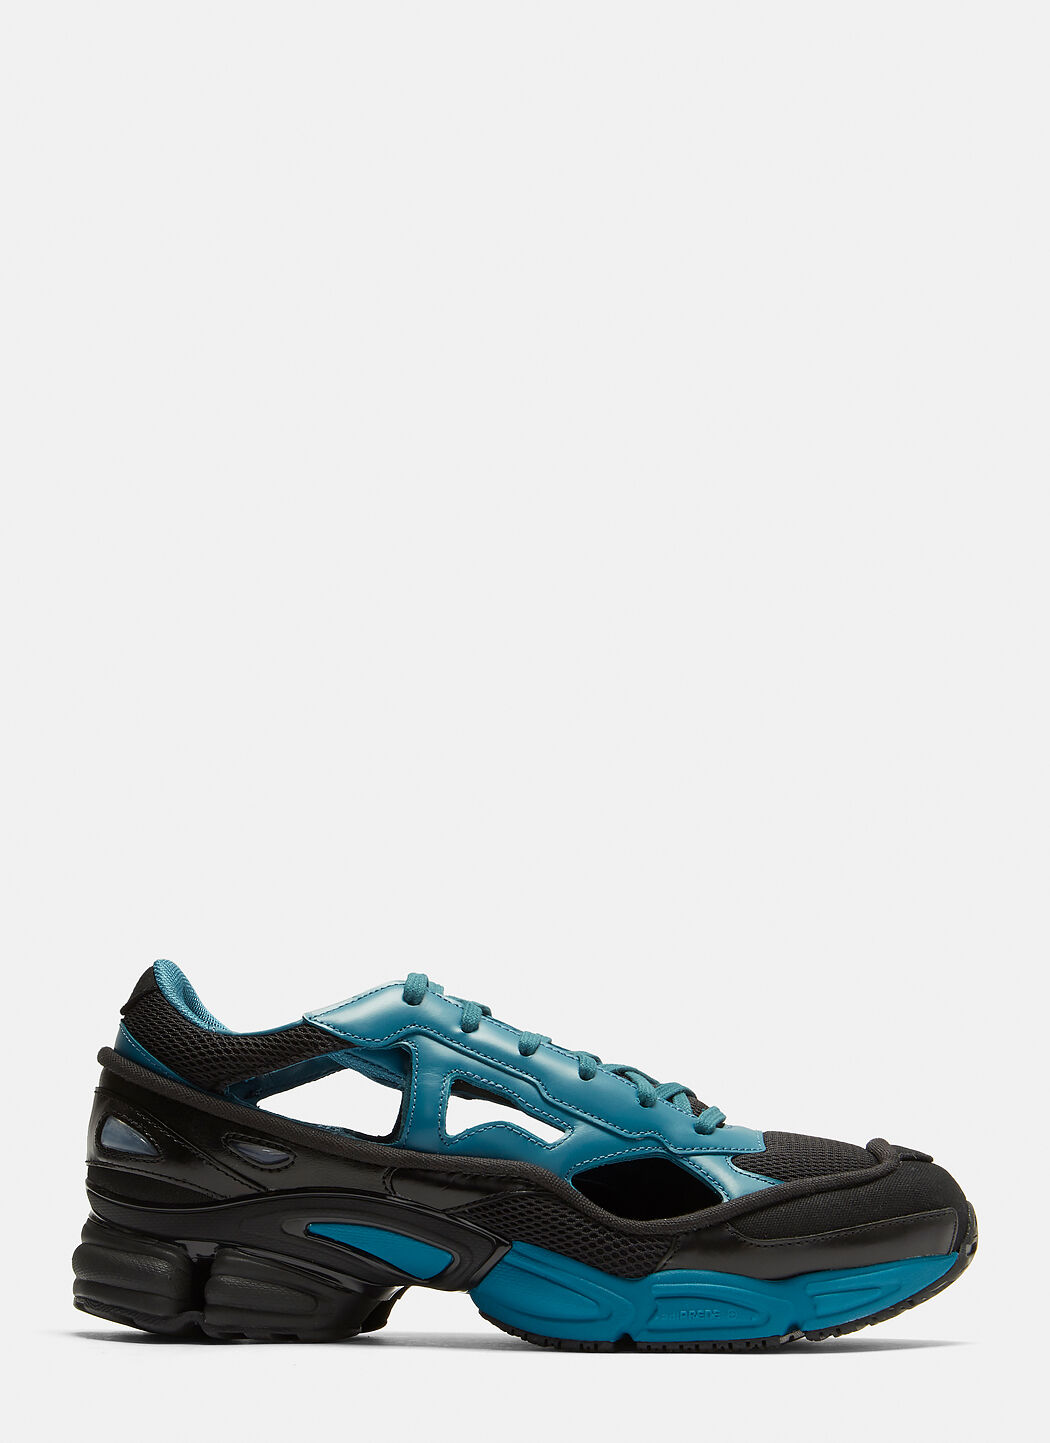 Black And Blue Replicant Ozweego Leather Sneakers adidas by Raf Simons aqcNkBo5em